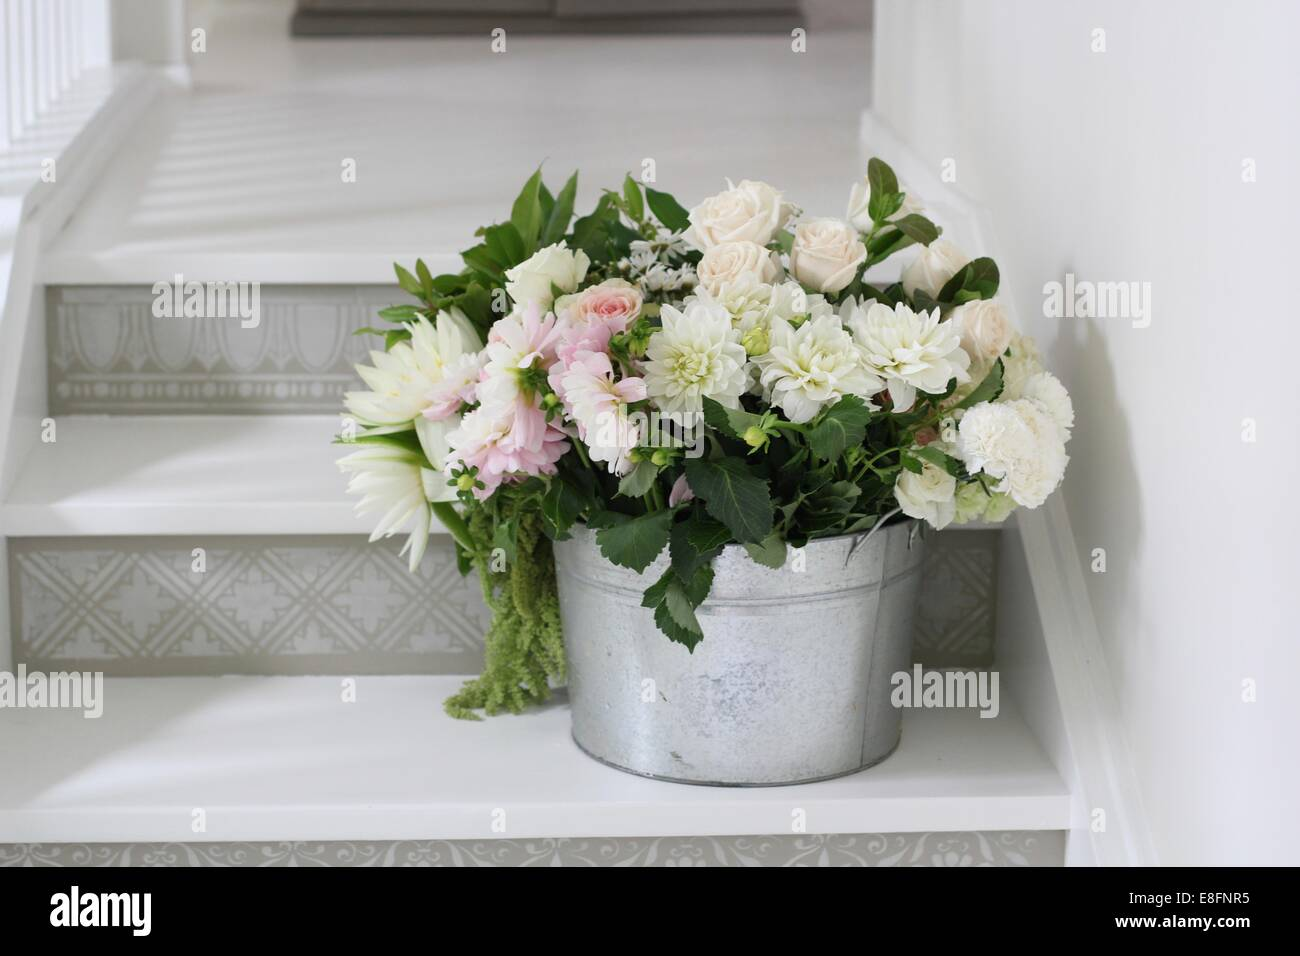 Bucket of cut flowers on steps - Stock Image